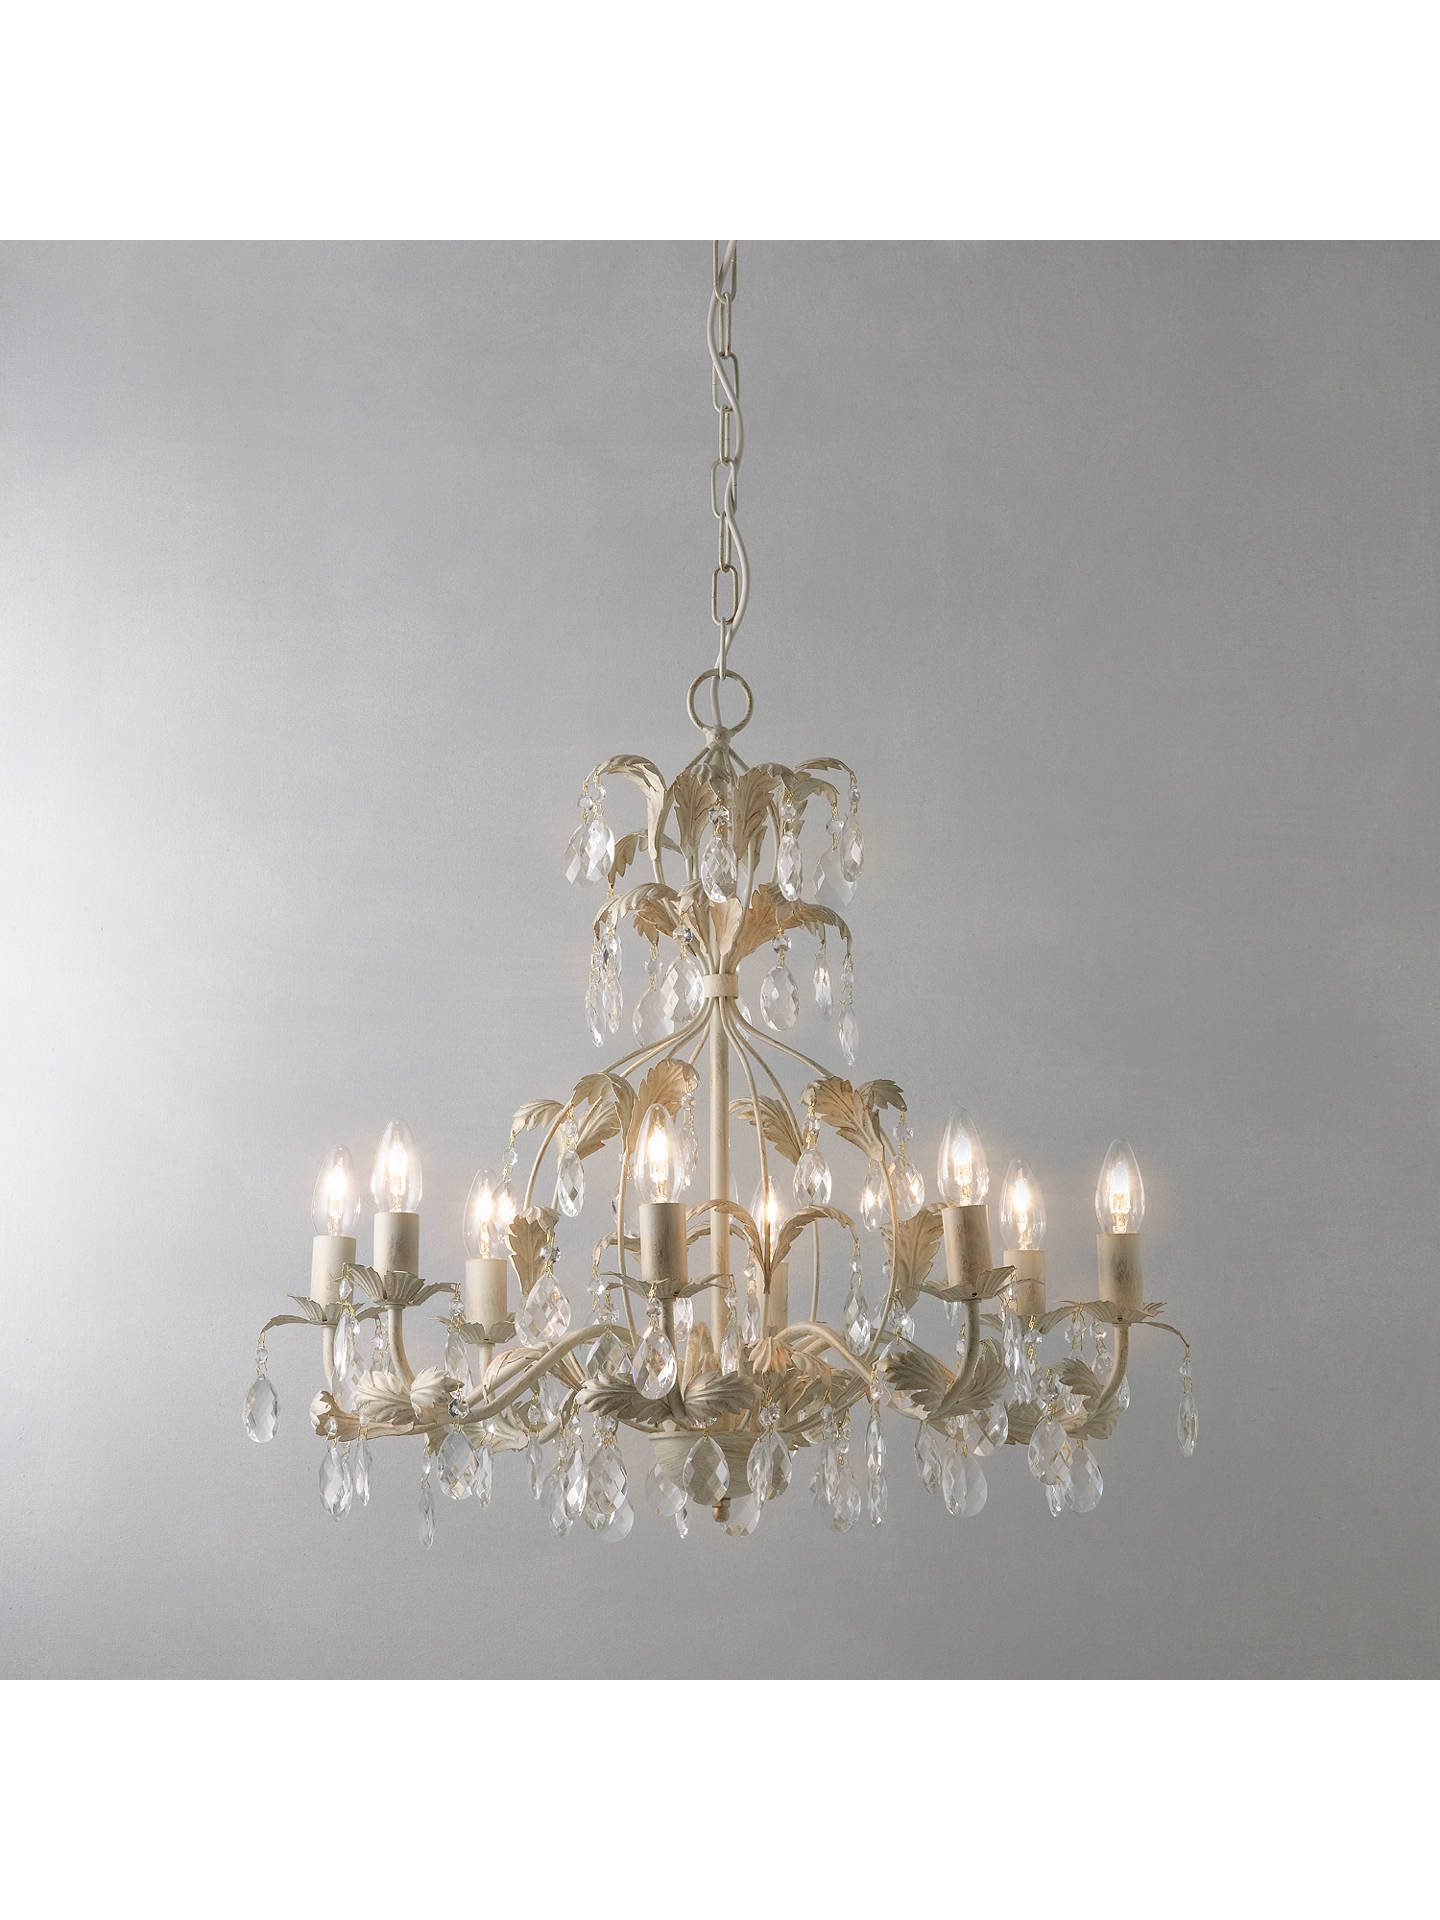 John lewis annabella chandelier 8 arm at john lewis partners buyjohn lewis annabella chandelier 8 arm online at johnlewis aloadofball Image collections